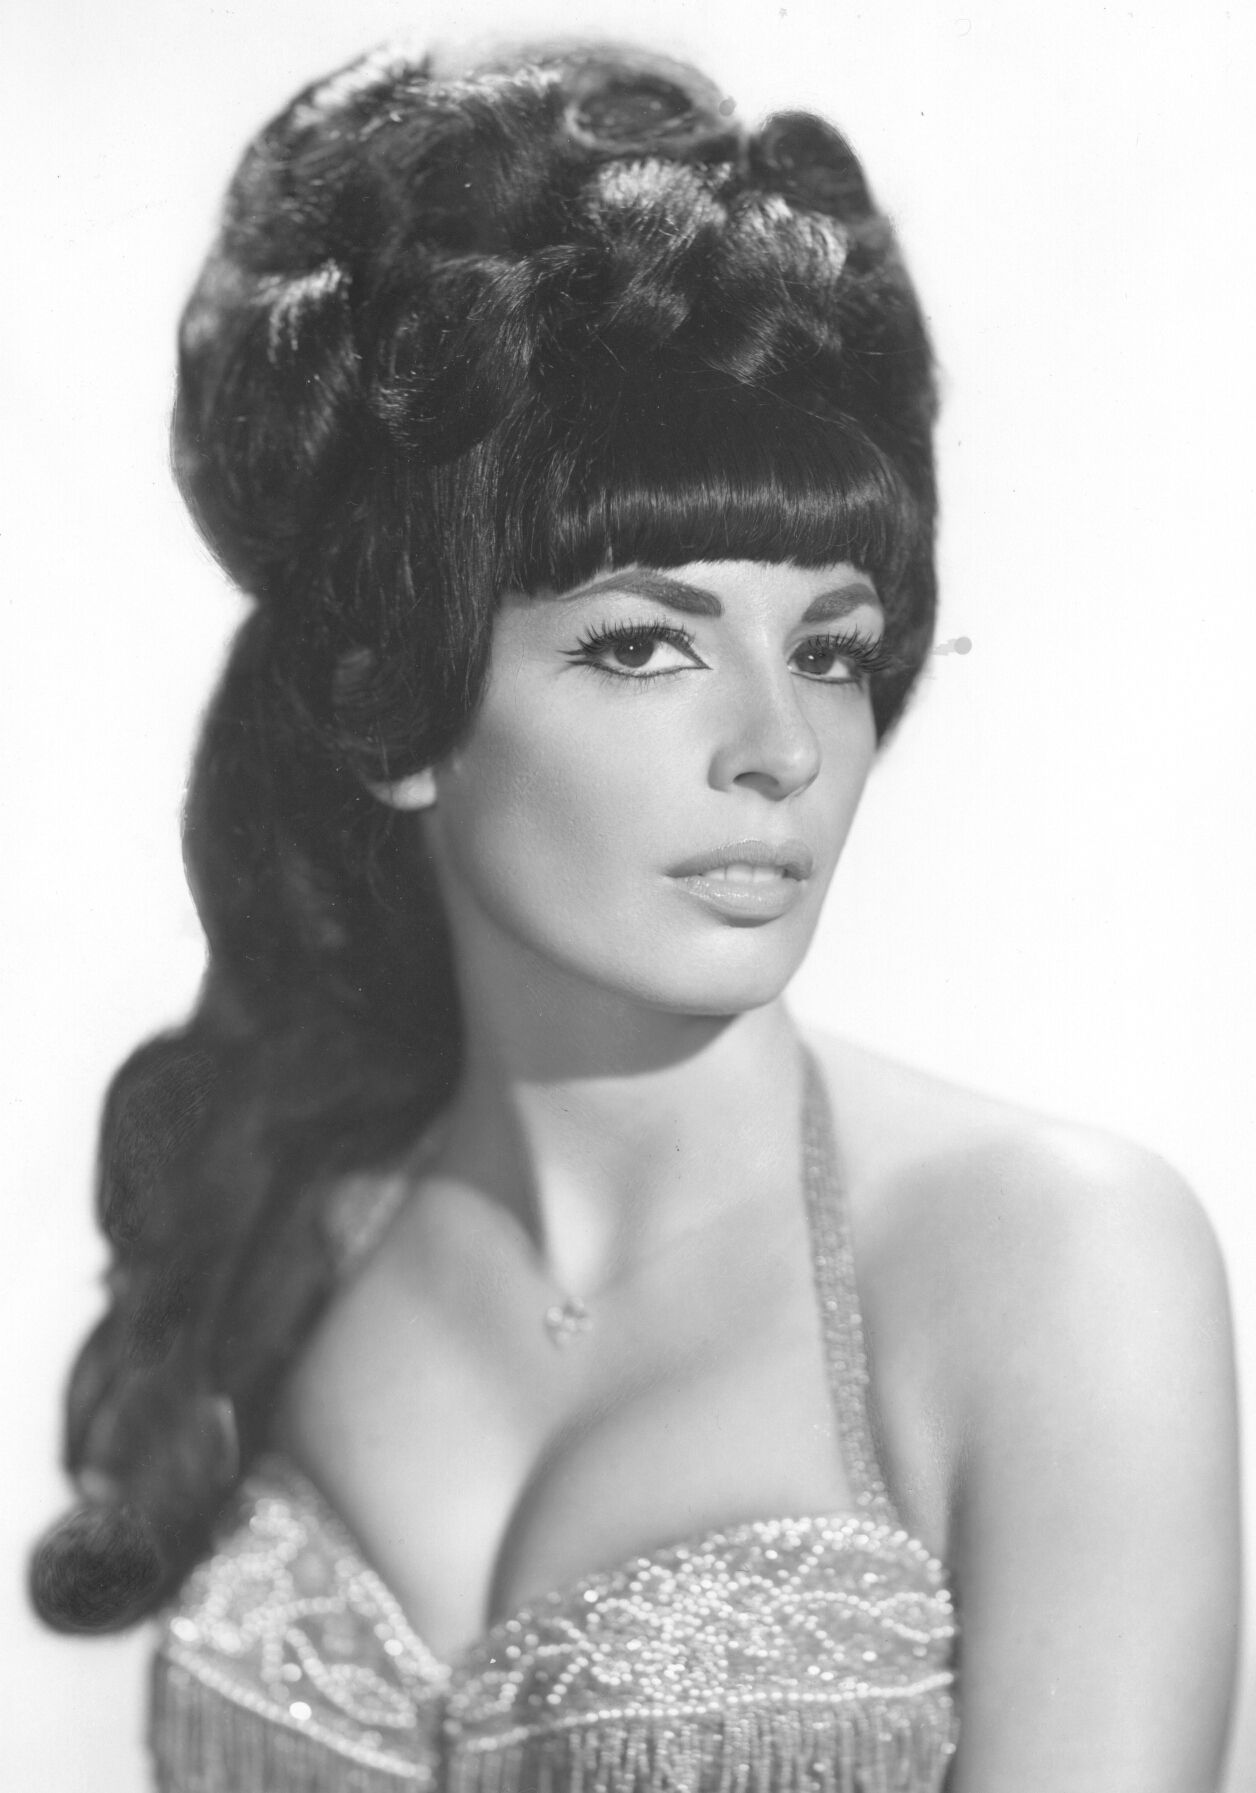 hairestyle 1960s | bouffant1 | Pinterest | 1960s, Vintage hair and ...